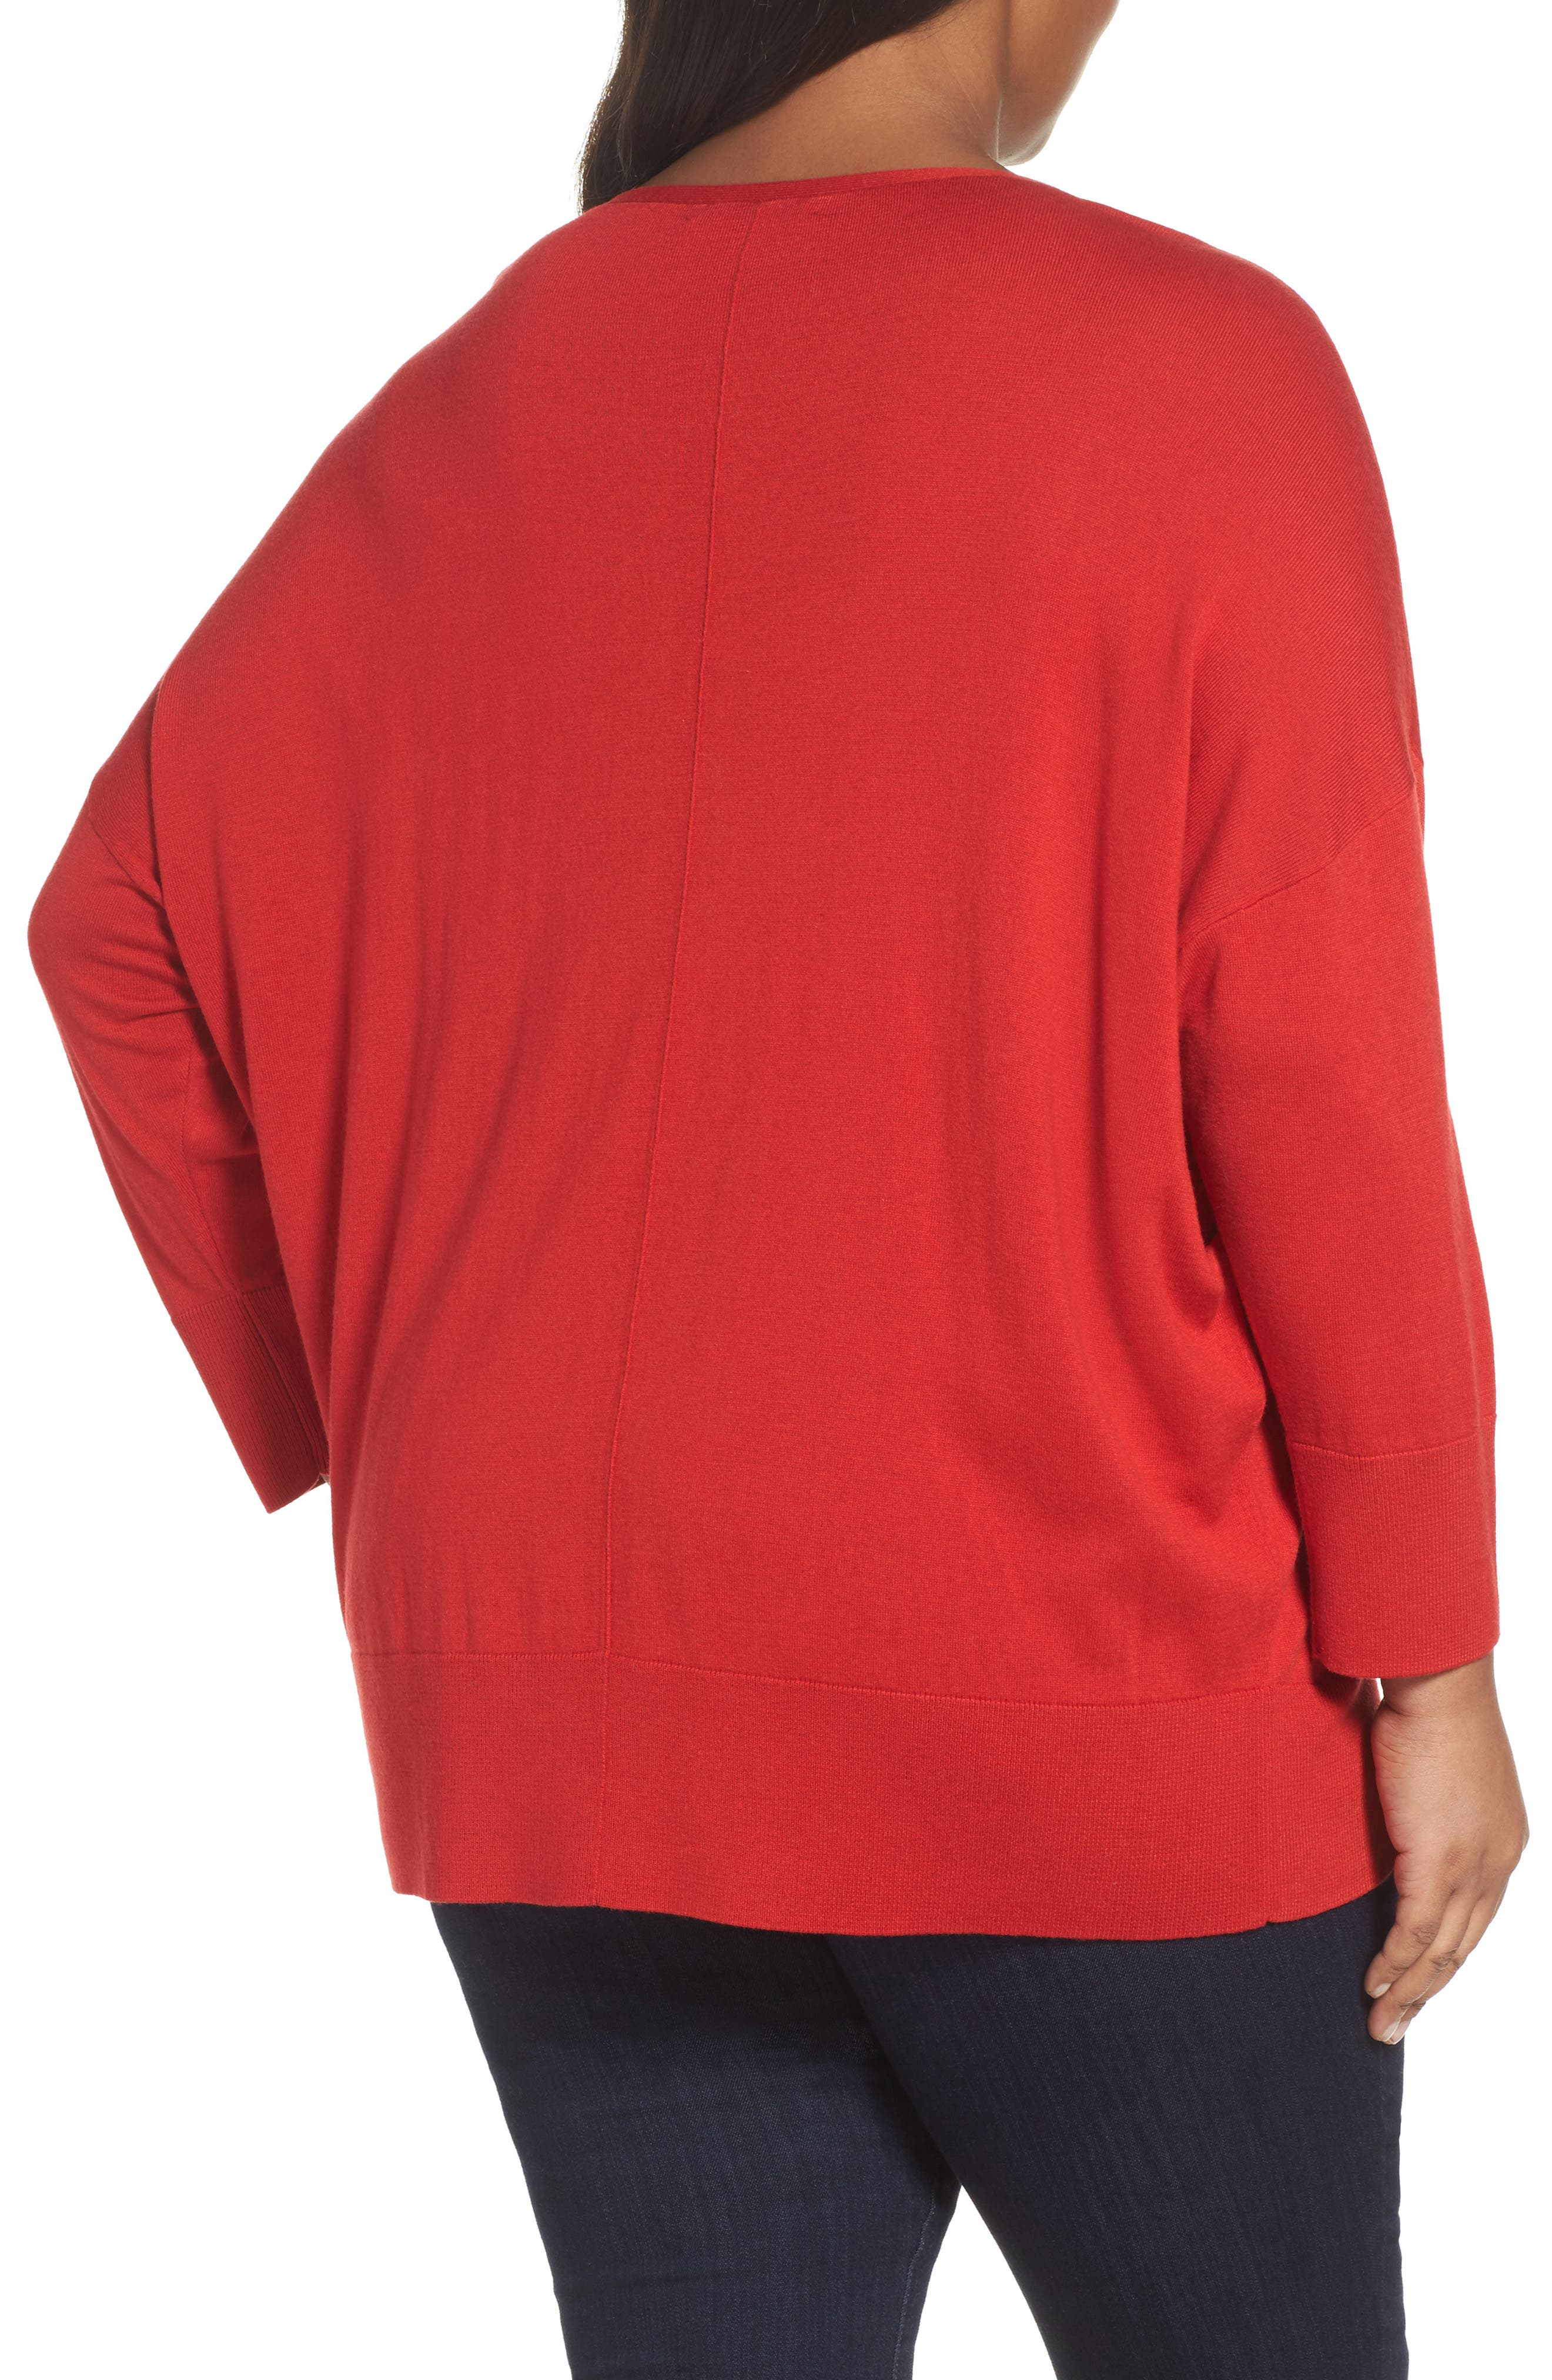 Dolman Sleeve Sweater,                             Alternate thumbnail 2, color,                             Red Samba